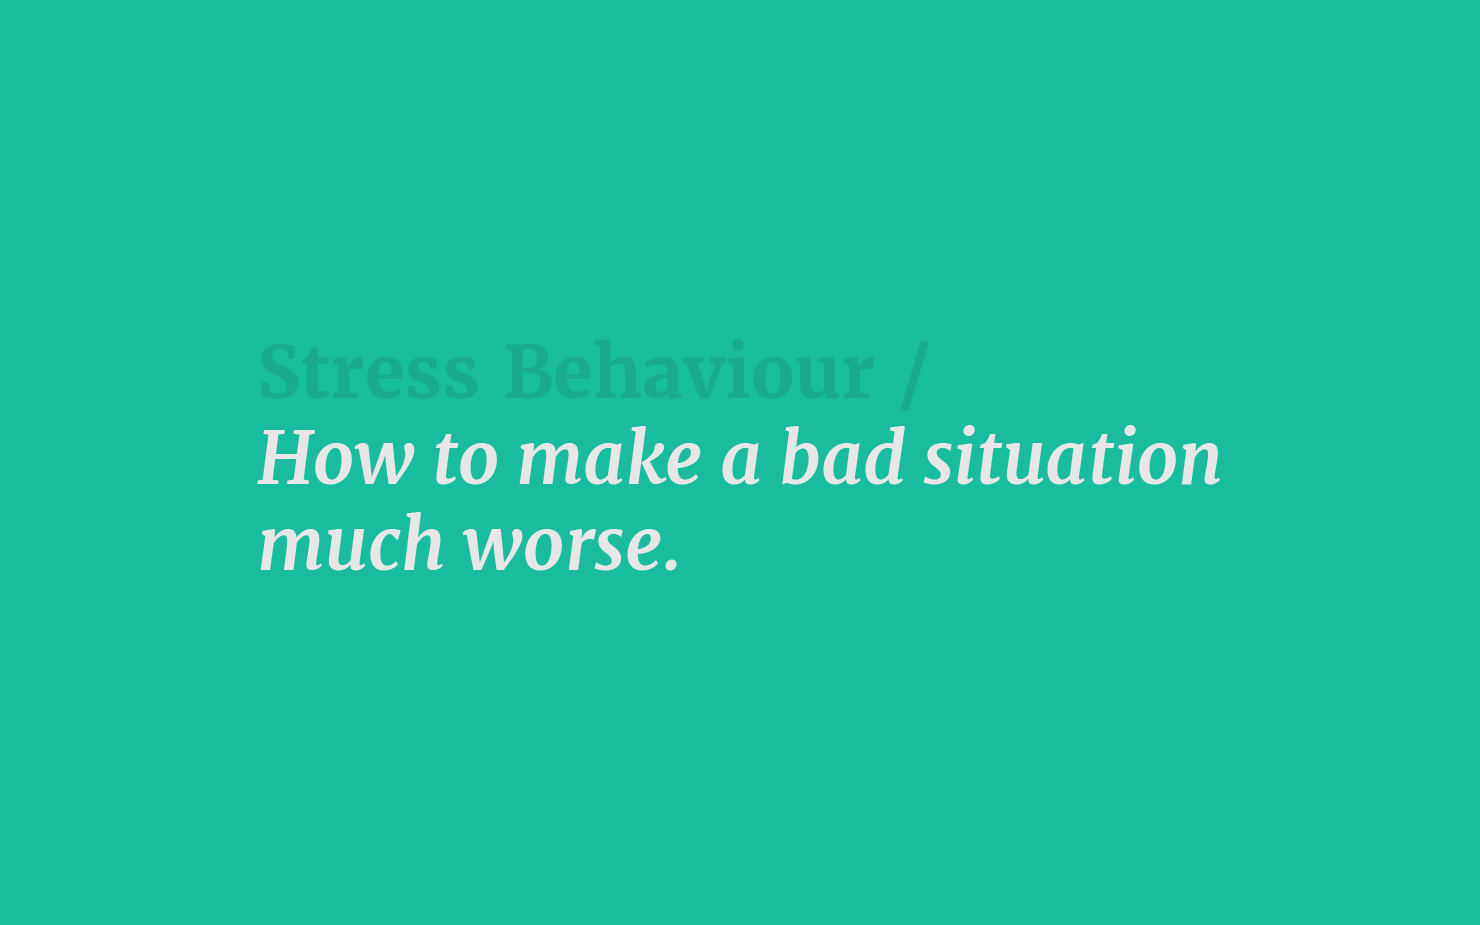 Stress Behaviour / How to make a bad situation much worse